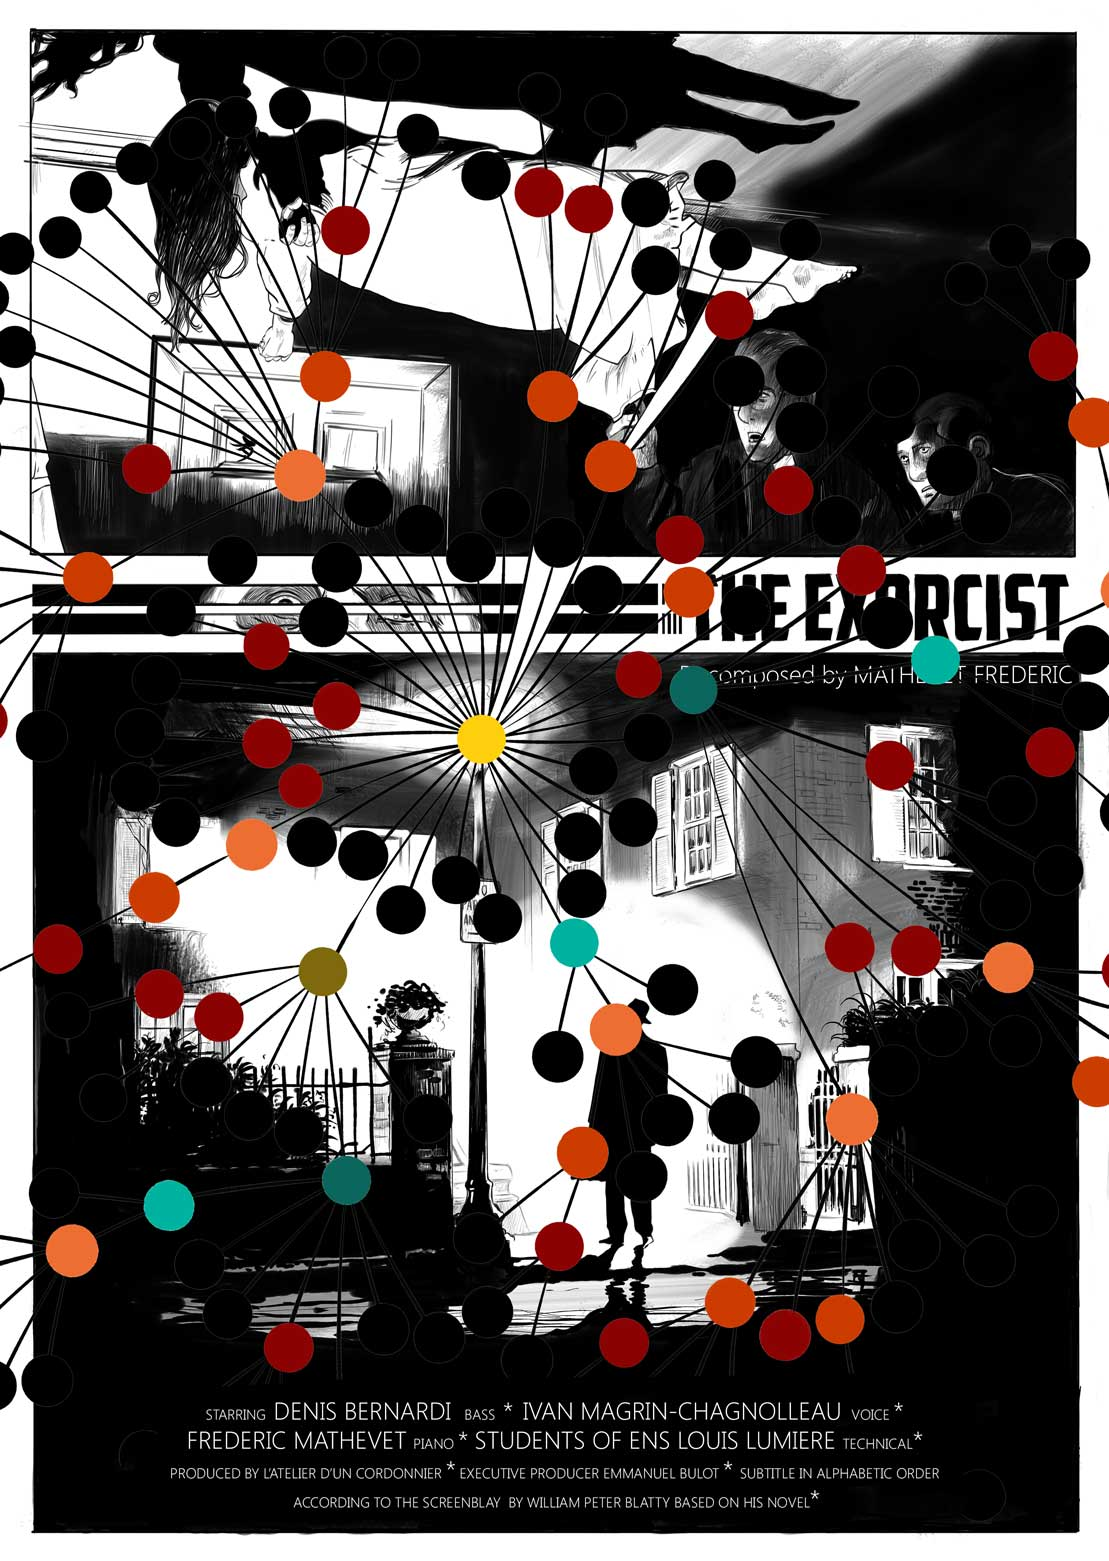 Illustration pour la performance The Exorcist : Antiphon Dub